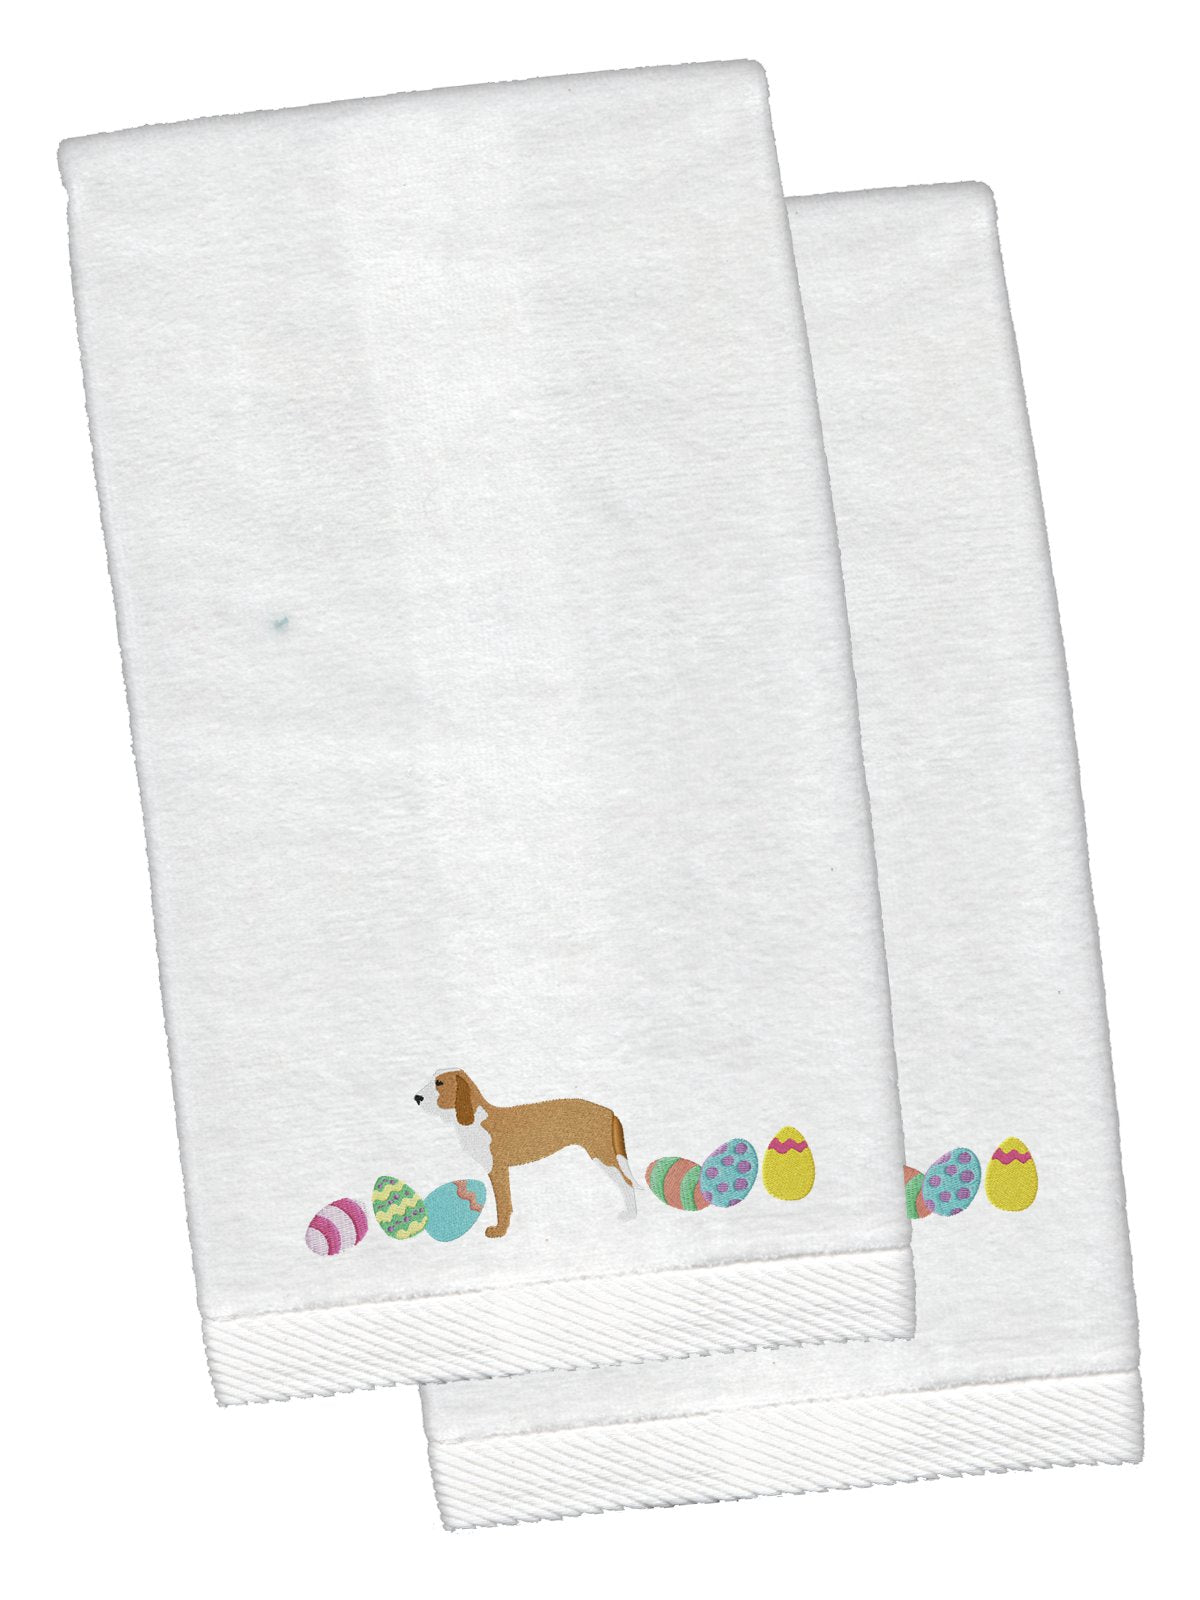 Sabueso Espanol Easter White Embroidered Plush Hand Towel Set of 2 CK1688KTEMB by Caroline's Treasures